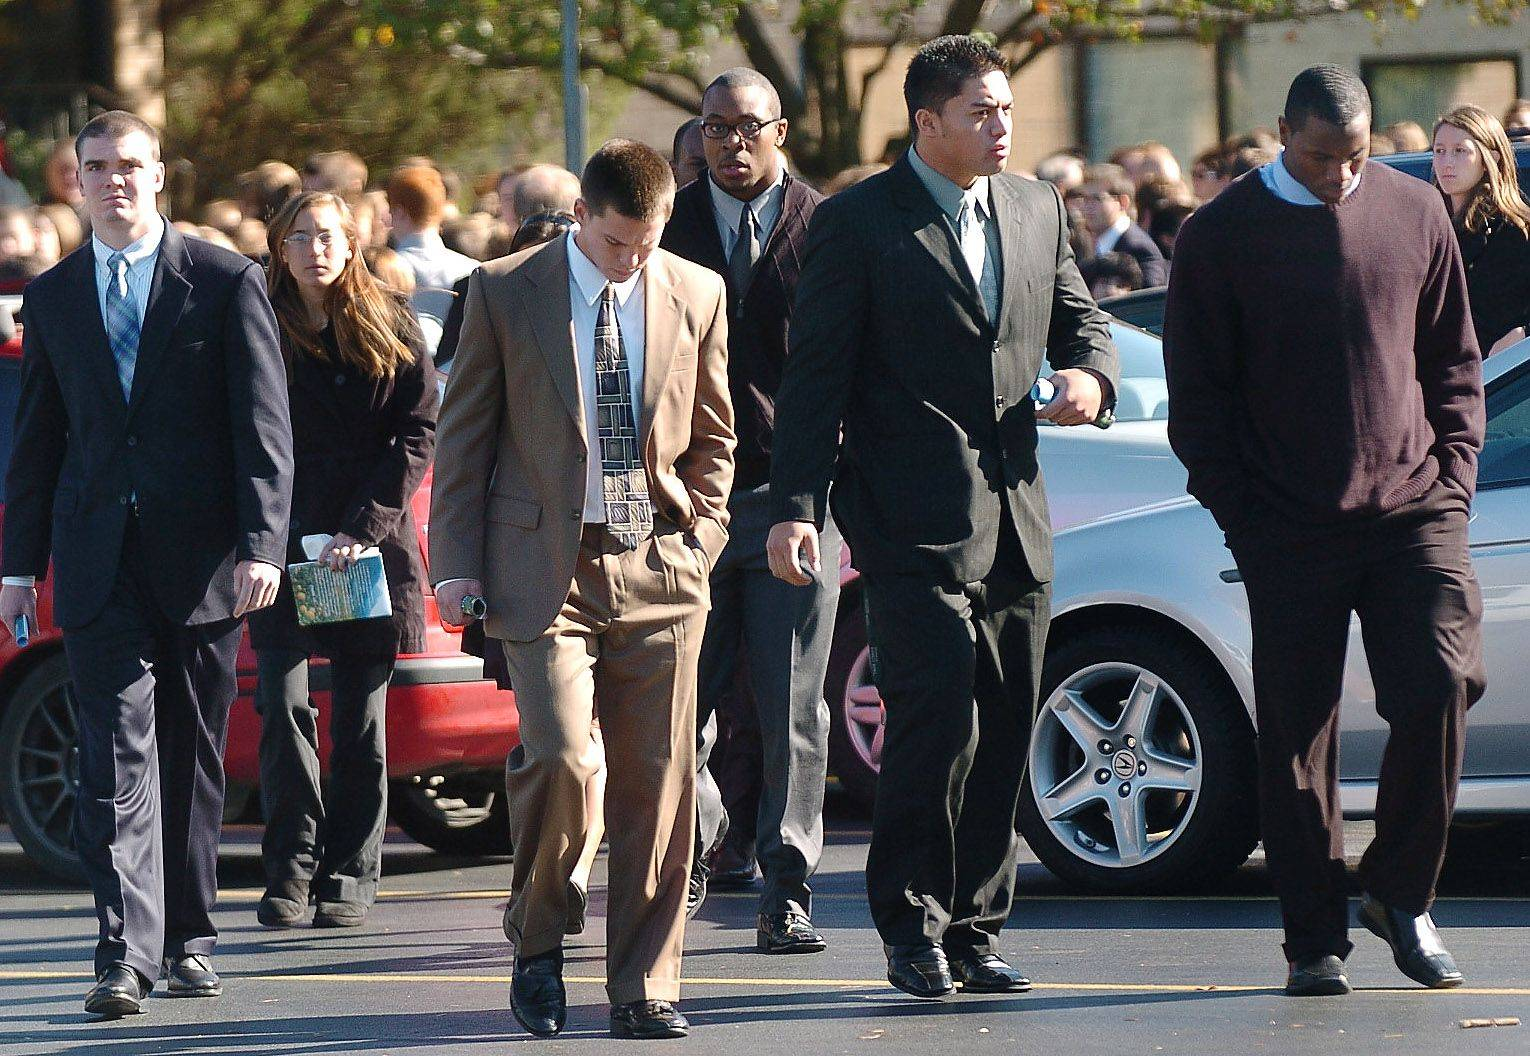 Notre Dame football players leave St. Mary Catholic Church after the funeral for Declan Sullivan.